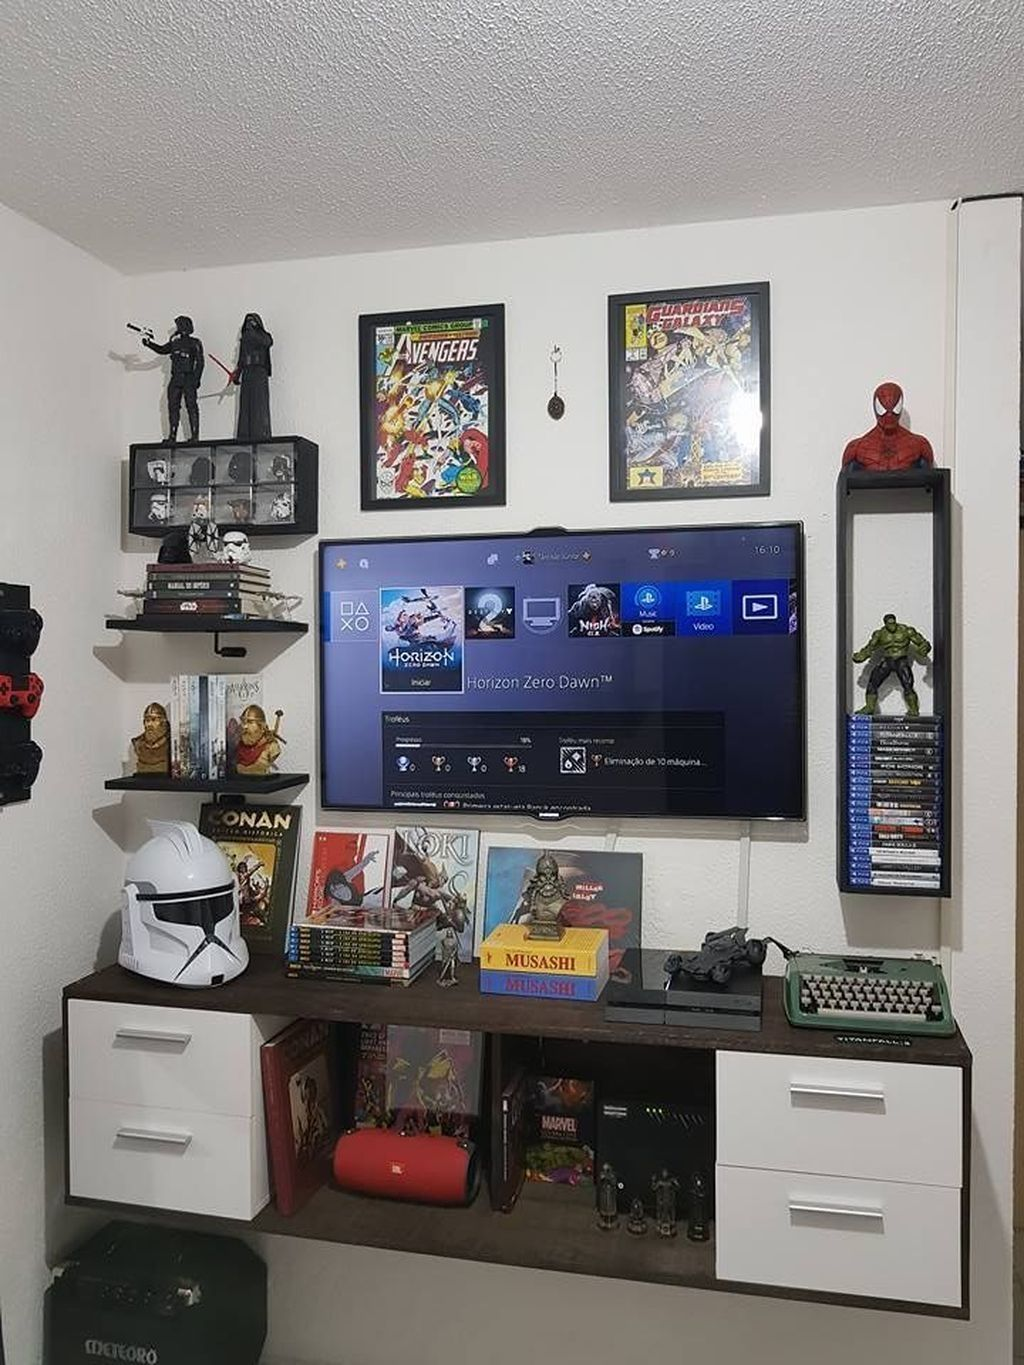 40 Best Video Game Room Ideas Cool Gaming Setup 2020 Guide In